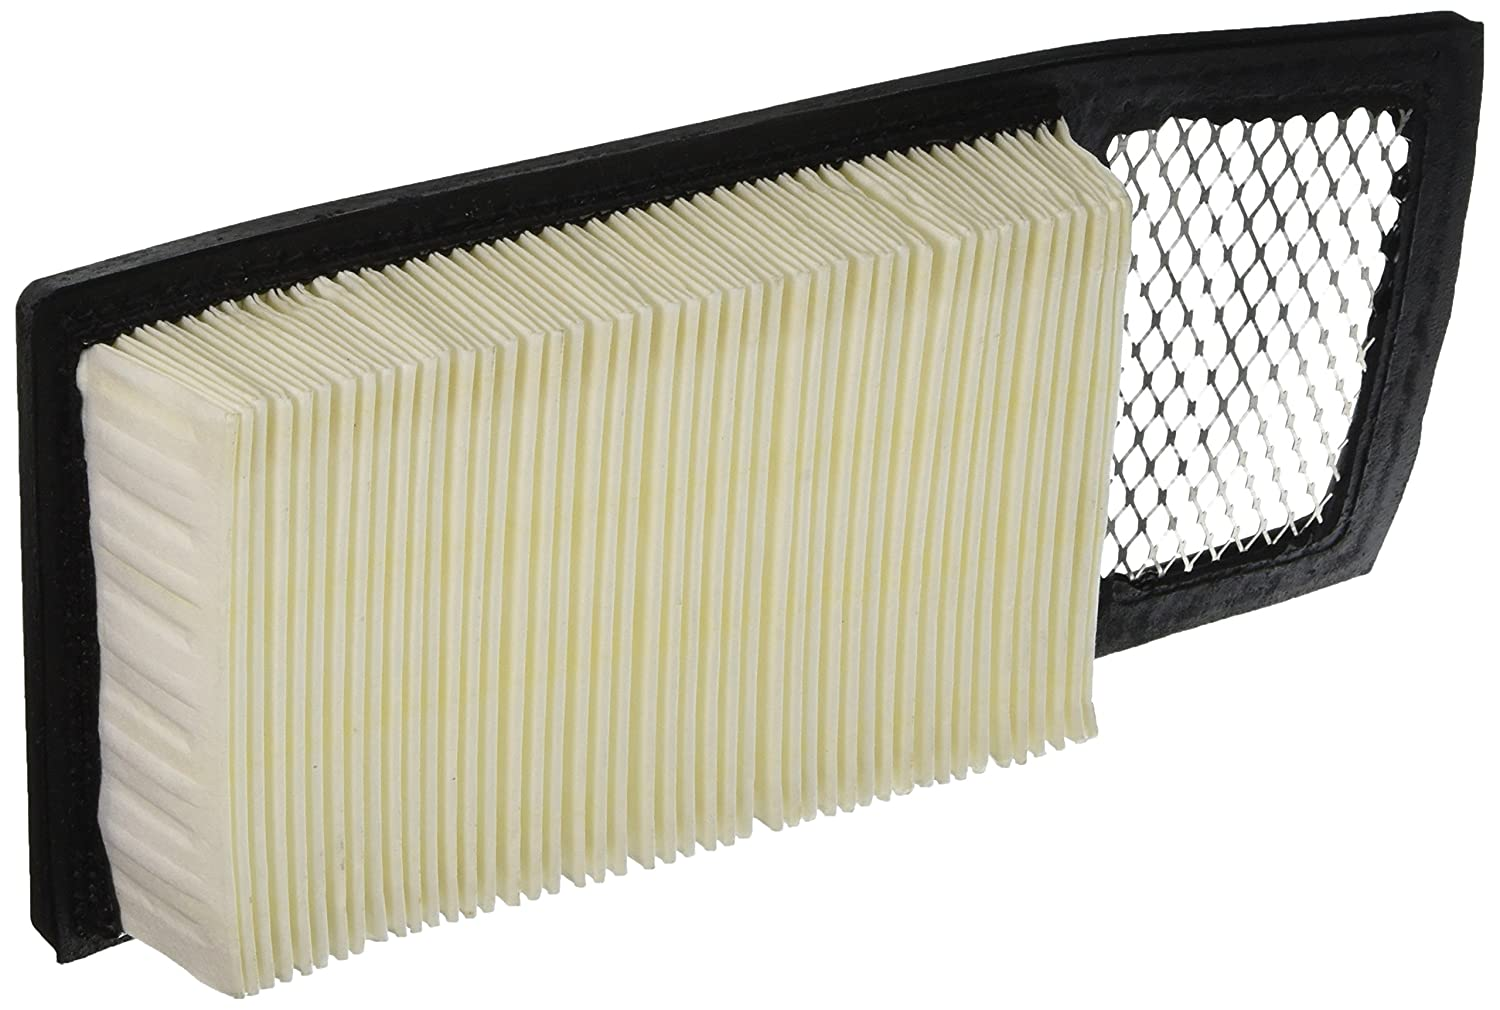 Stens 100-663 Air Filter Replaces E-Z-Go 72368G01 72144G01 100663